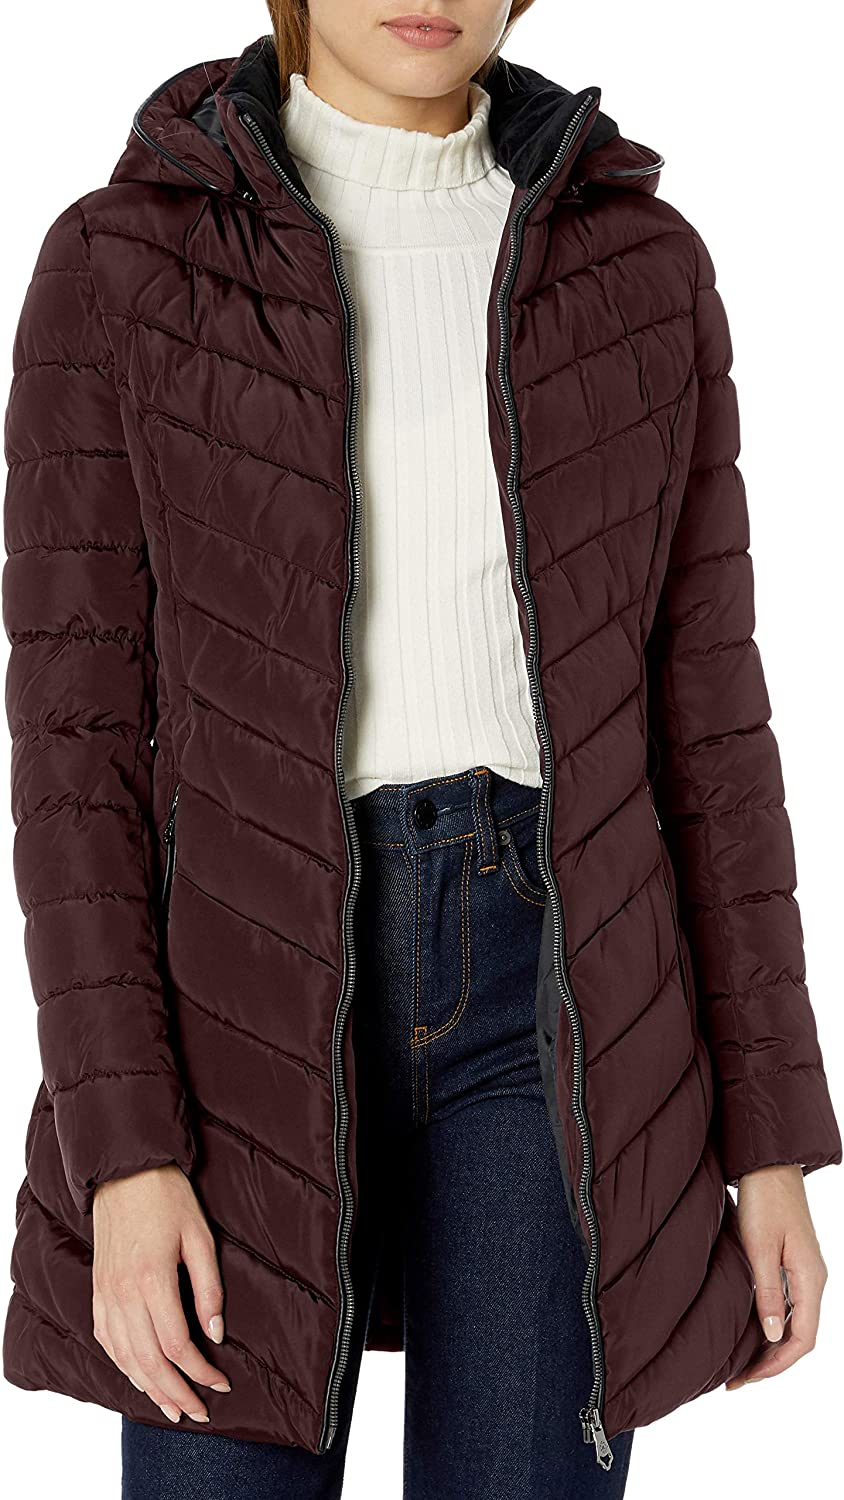 Nanette Lepore Women's Long Puffer Coat